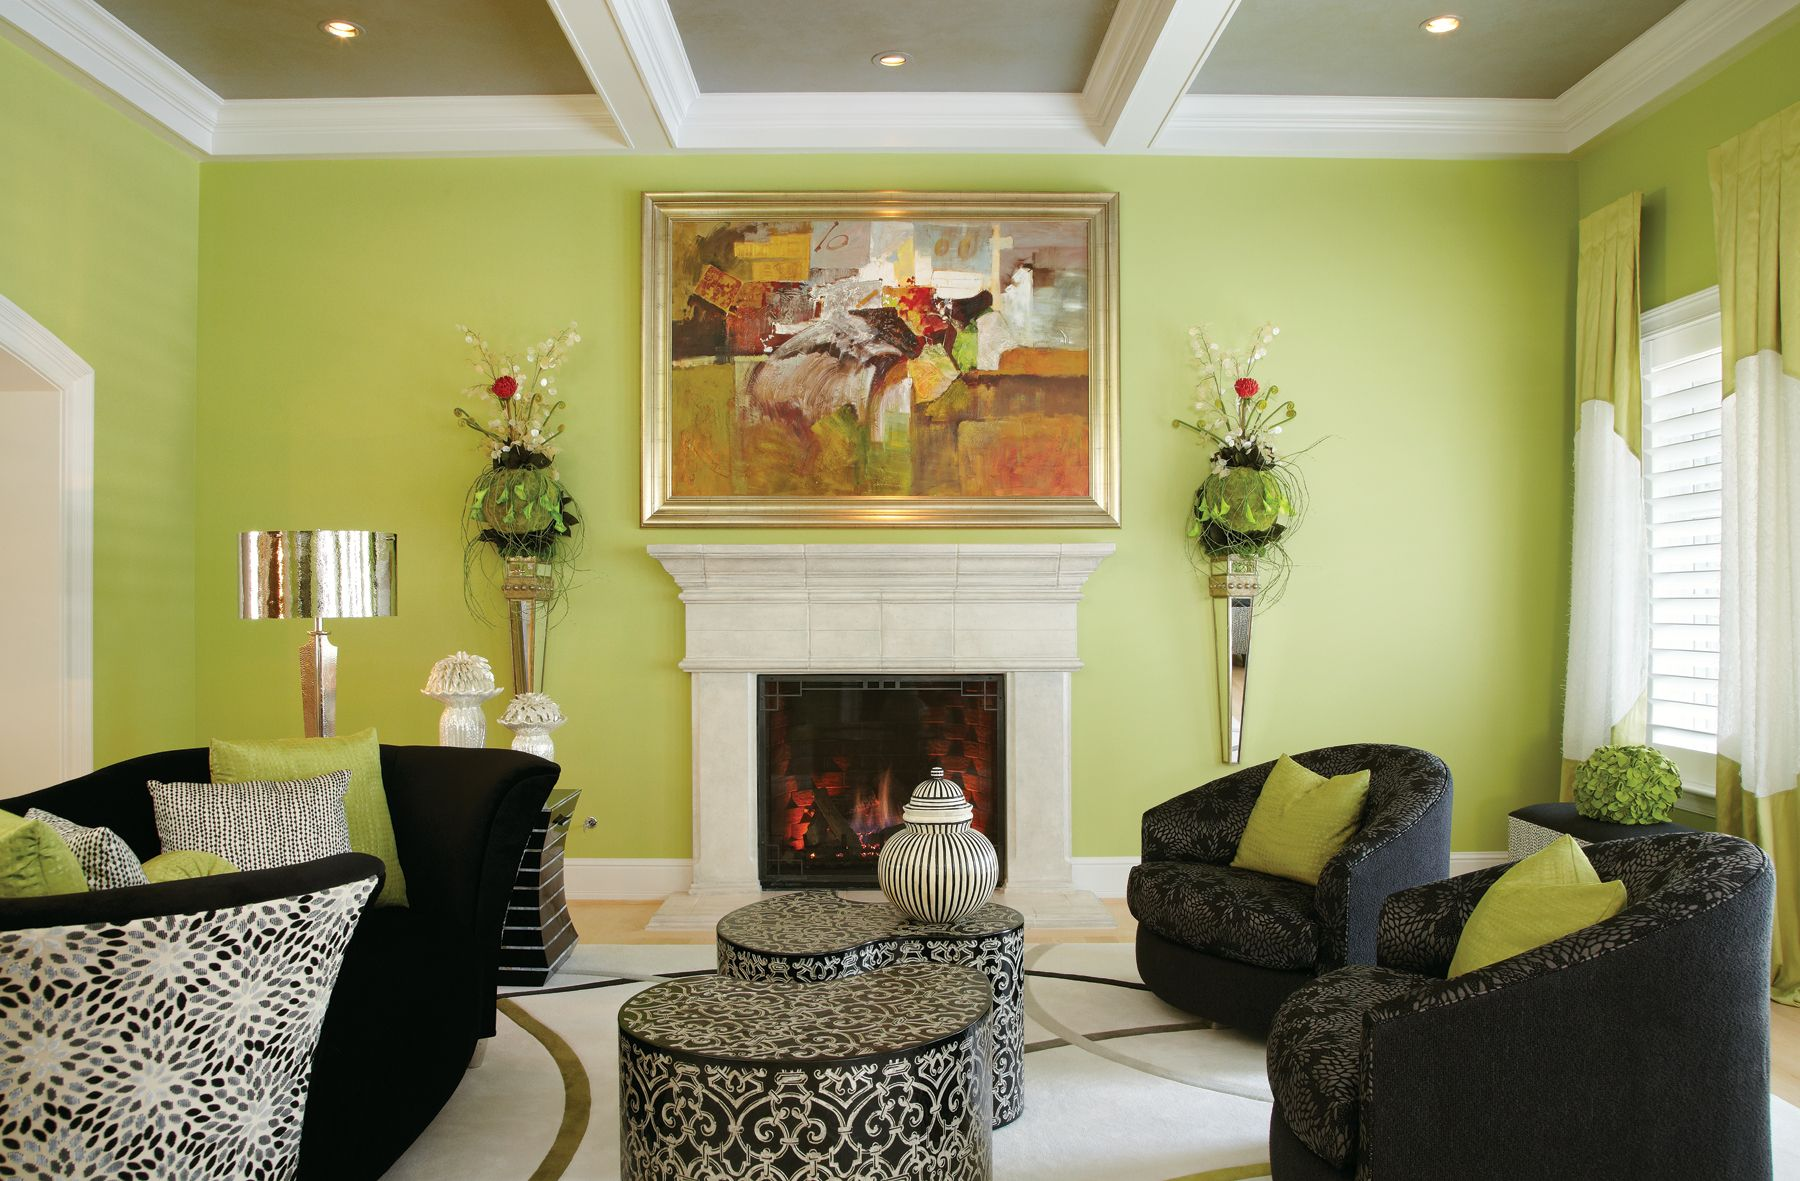 For Having A More Cheerful Feel In Living Room Light Green Or Lime Green Can Be The Best Cho Green Walls Living Room Green Living Room Decor Living Room Green